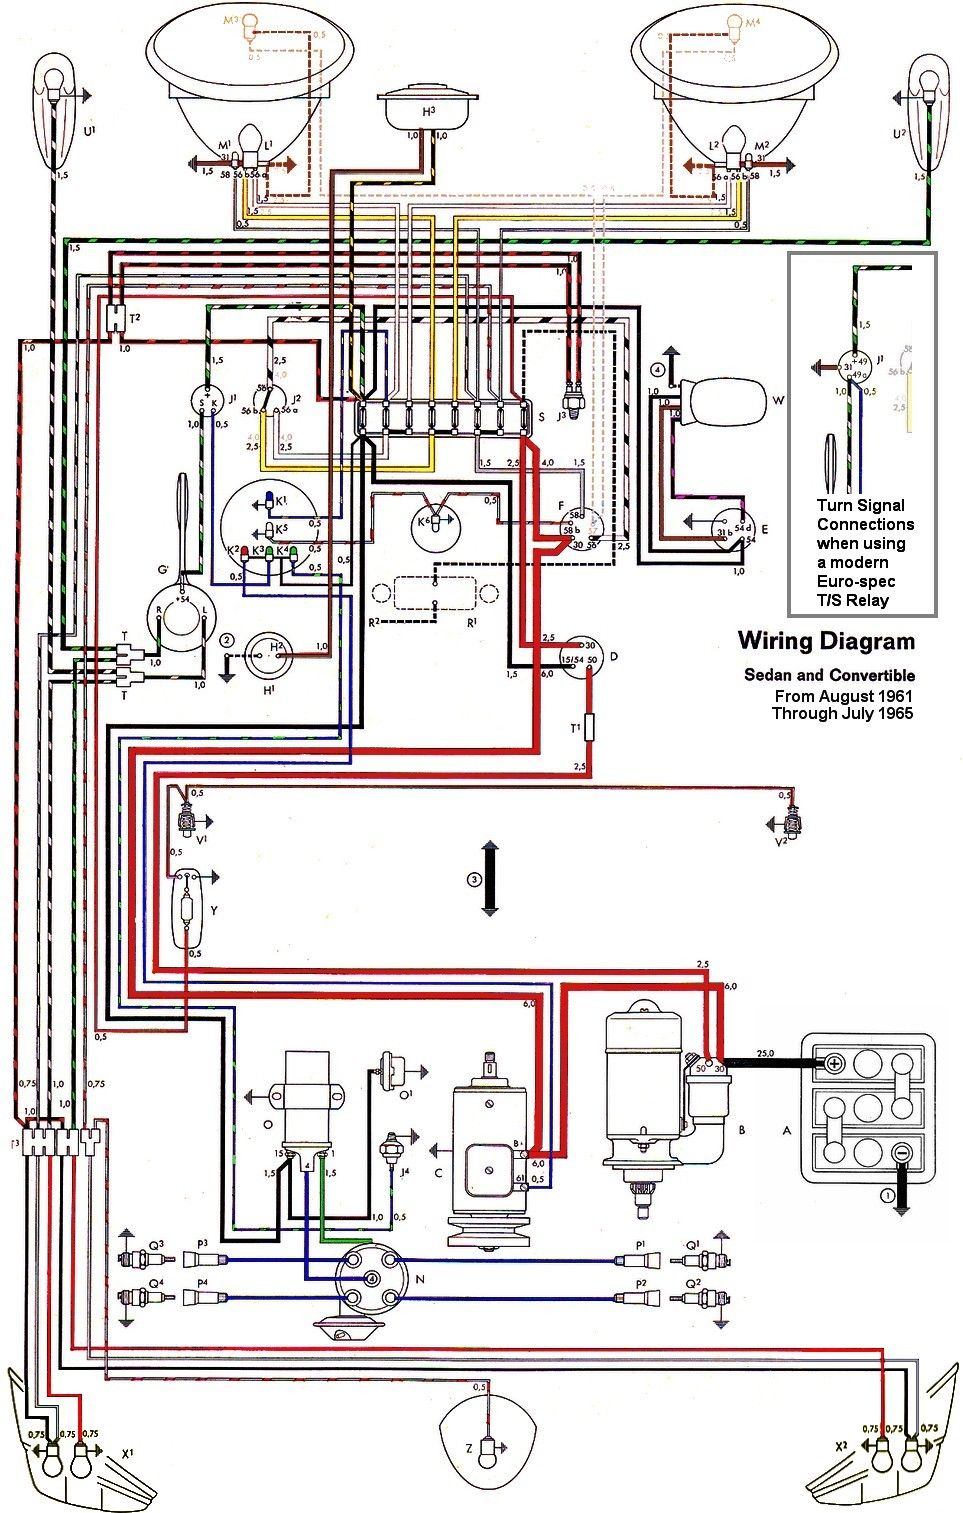 hight resolution of wiring diagram vw beetle sedan and convertible 1961 1965 vw volkswagen amp meter wiring diagram volkswagen wiring diagram